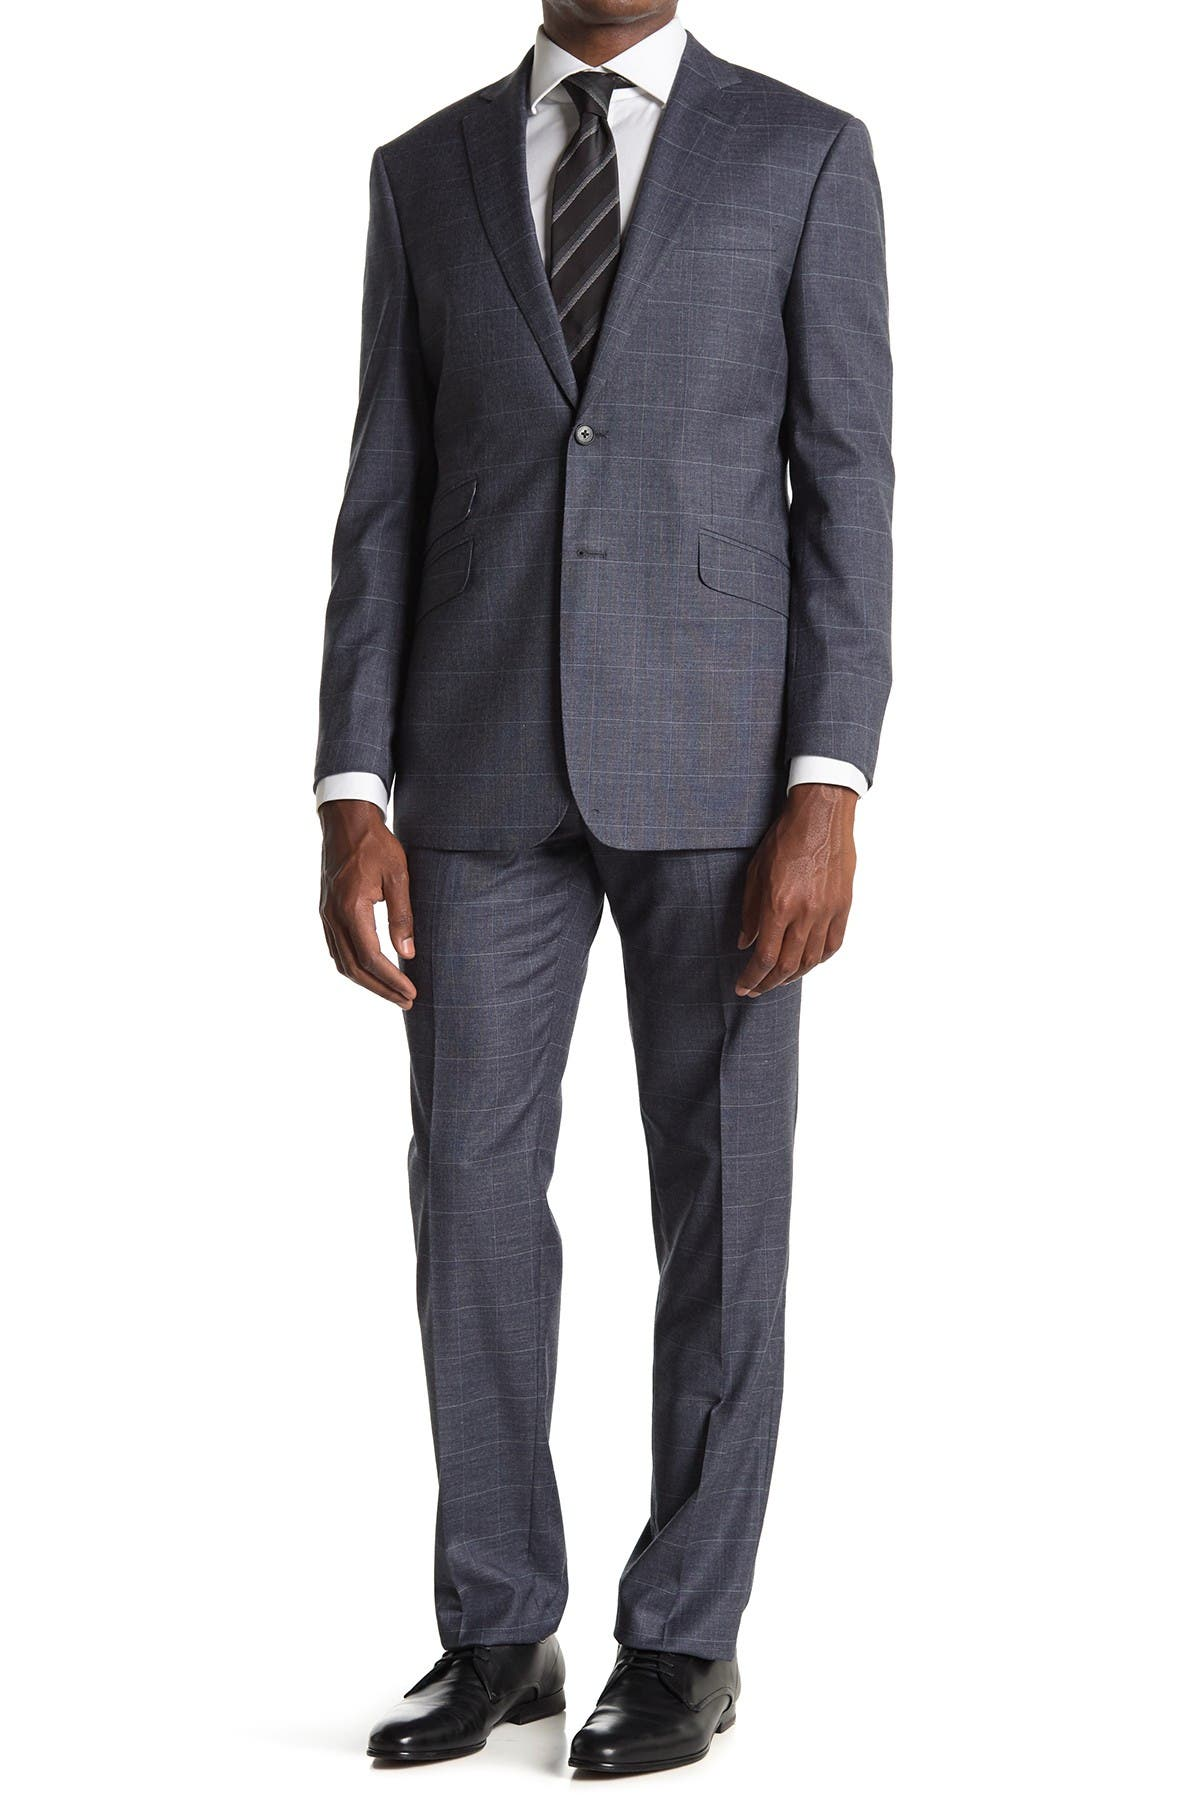 Image of English Laundry Grey Plaid Two Button Notch Lapel Suit